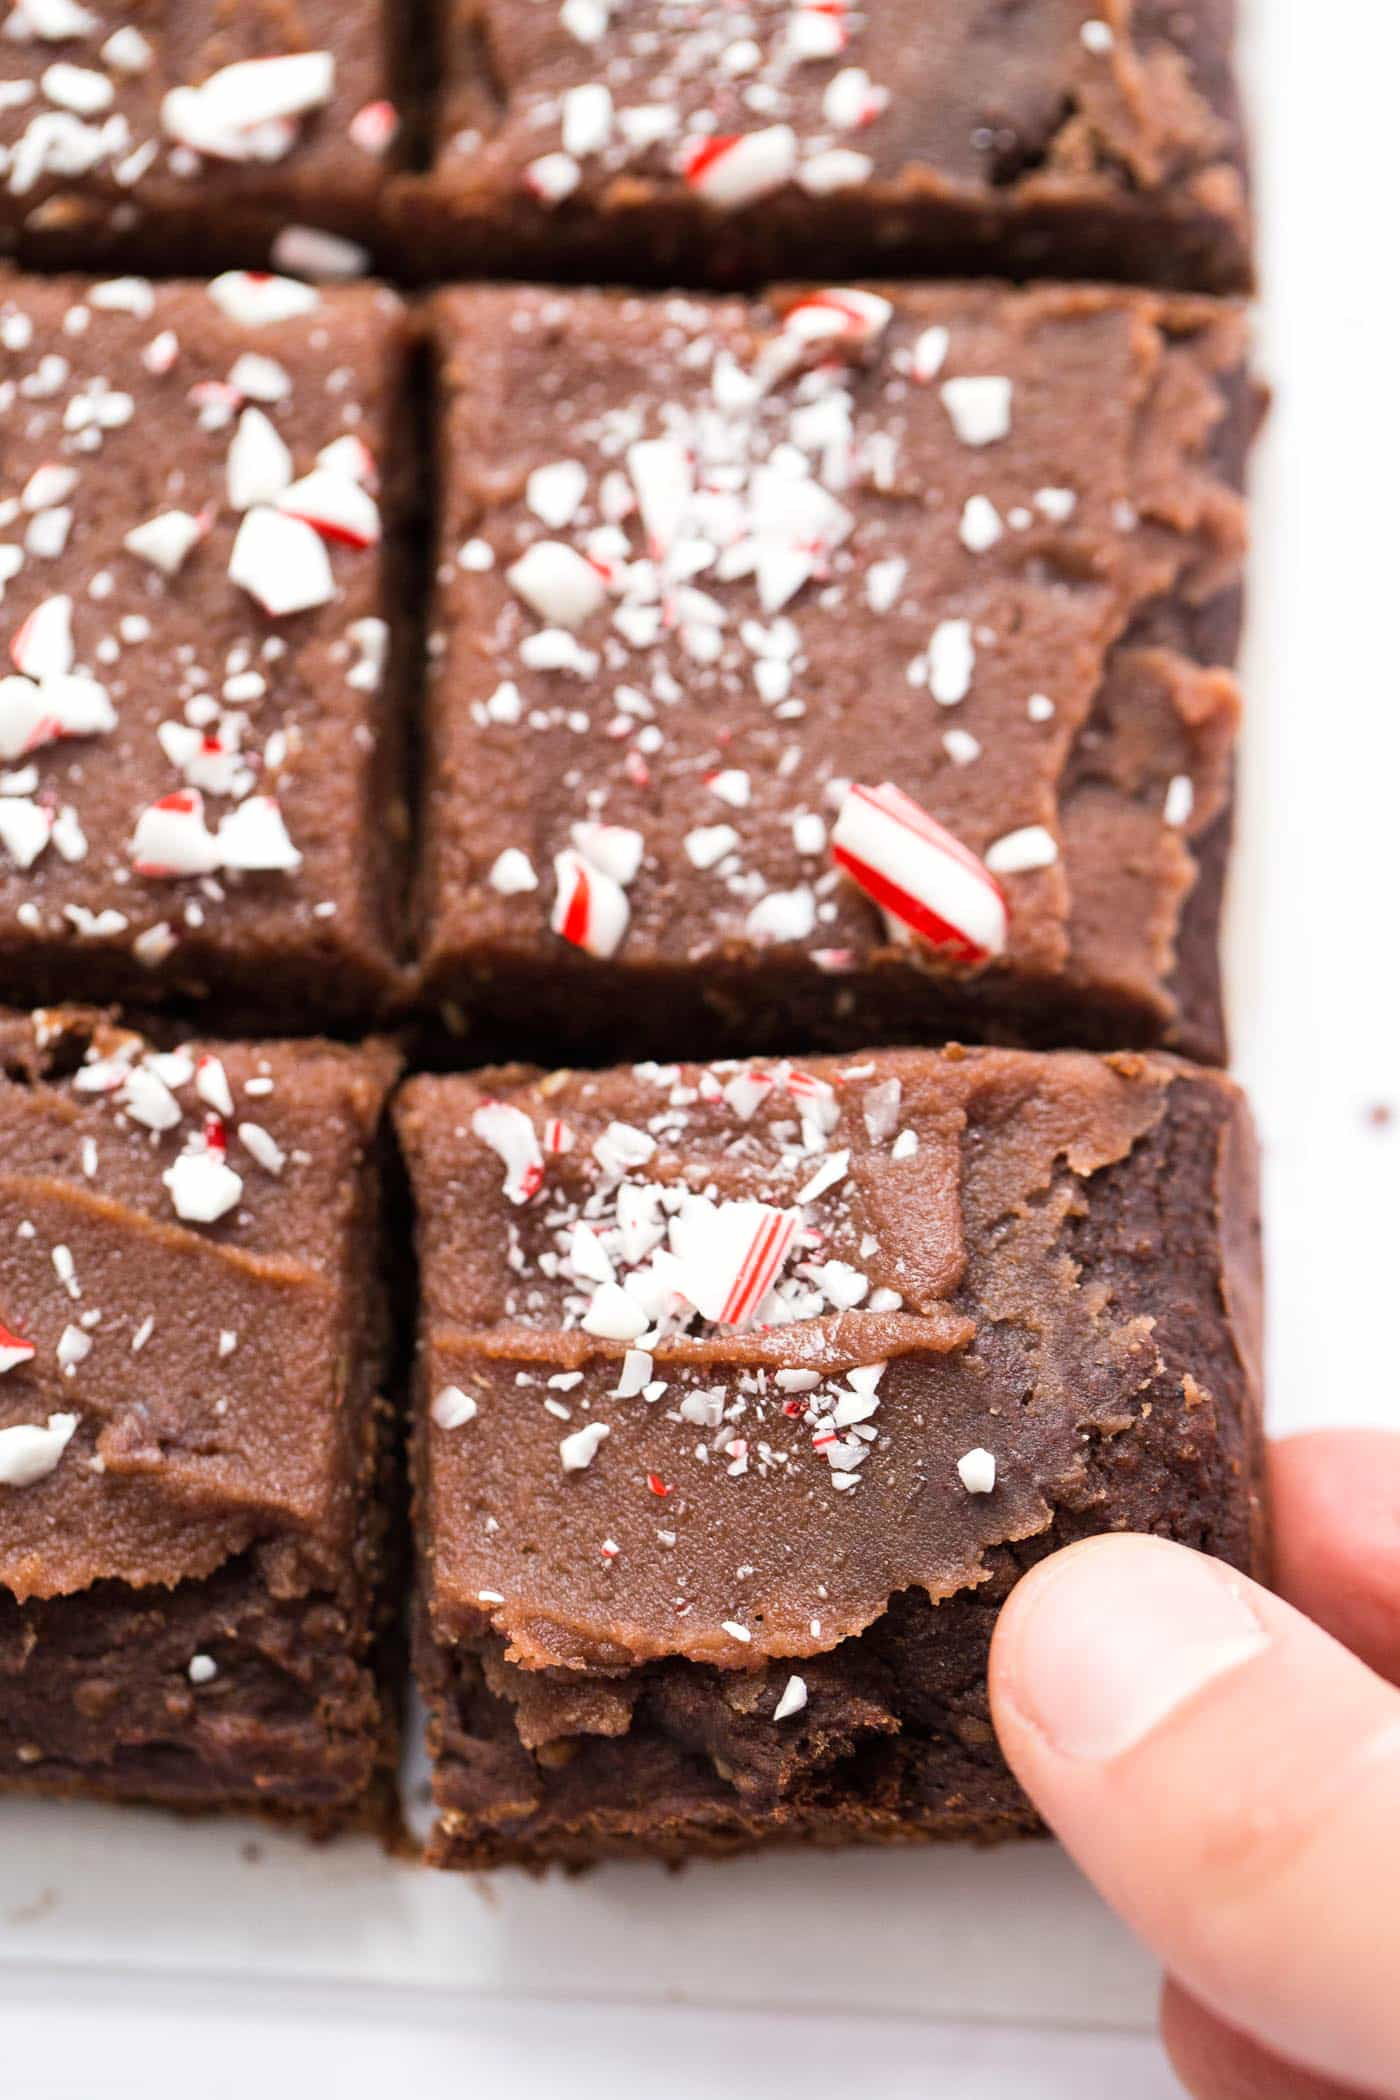 These chocolate frosted CHICKPEA BROWNIES are made with only pure ingredients, naturally gluten-free and high in plant-based protein!